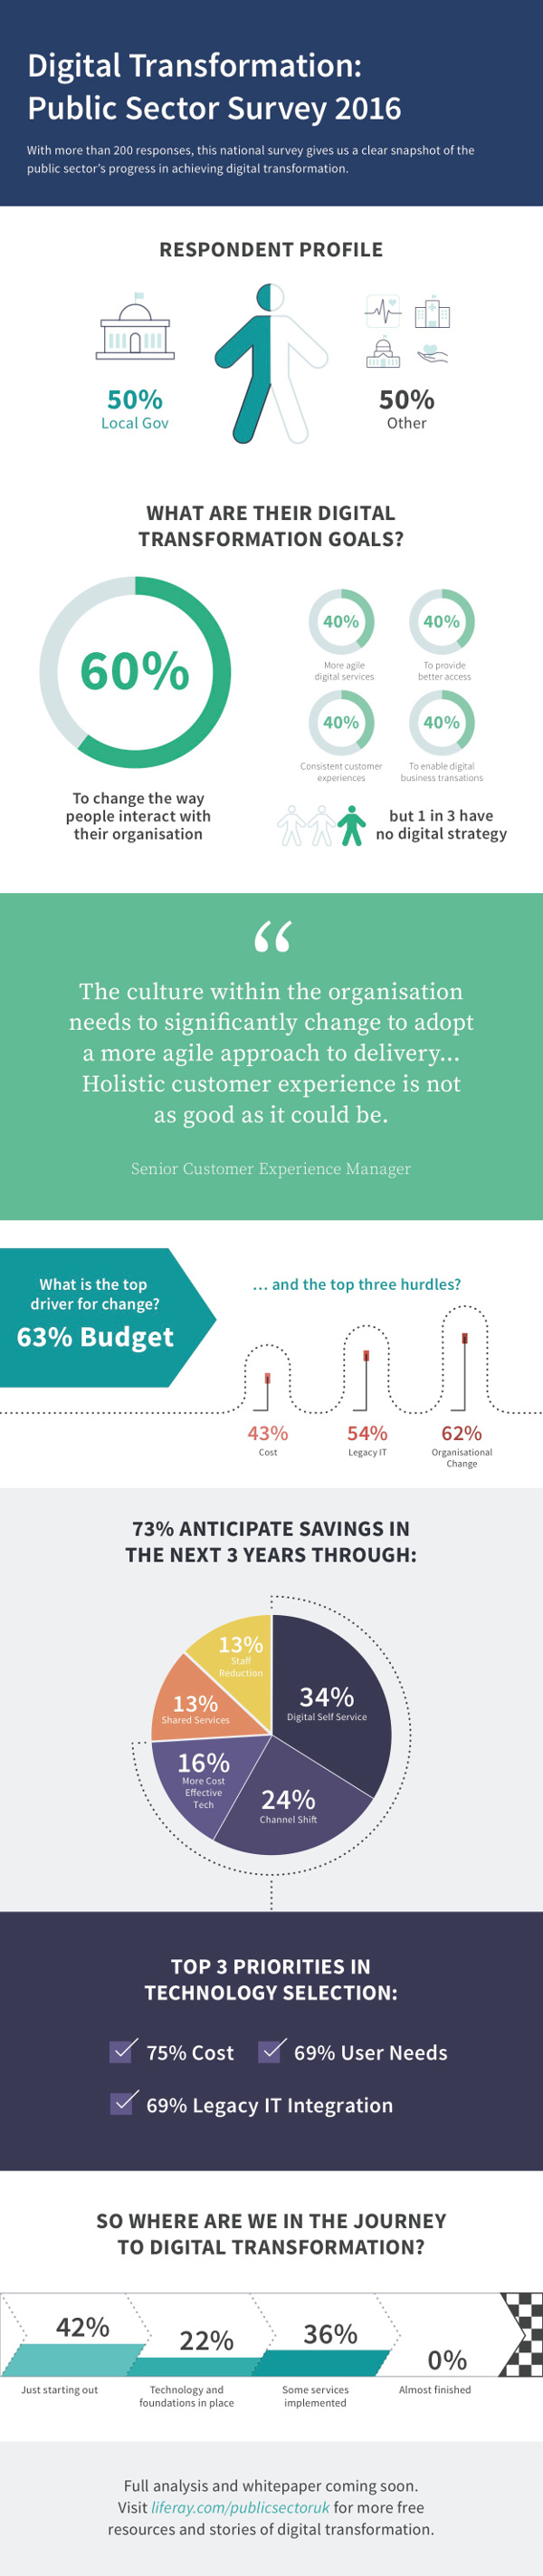 Liferay-Digital-Transformation-Survey-Infographic-600